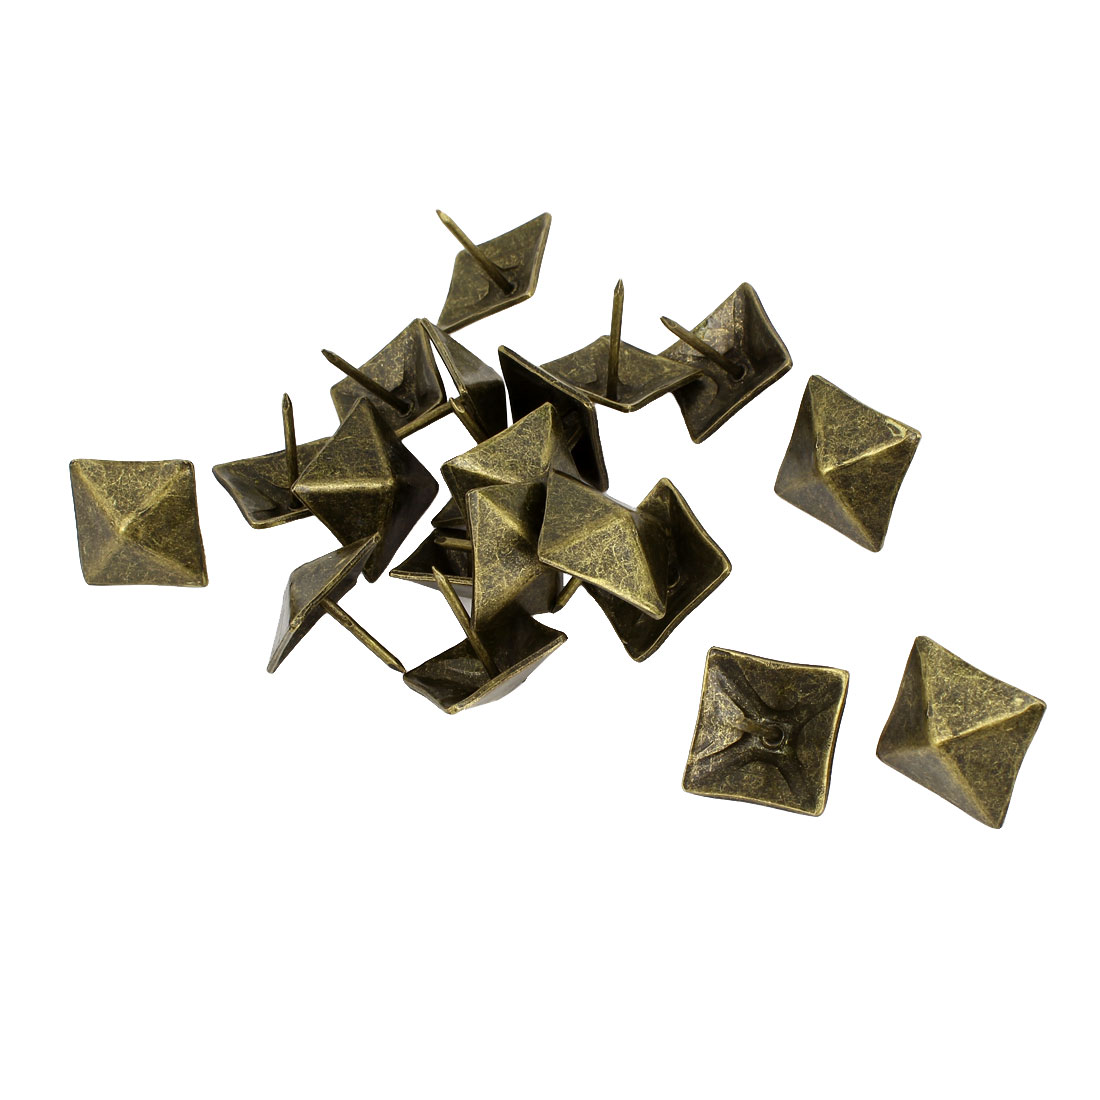 20 Pcs Bronze Tone Square Shape Message Board Pushpins Thumb Tacks 19mm Dia